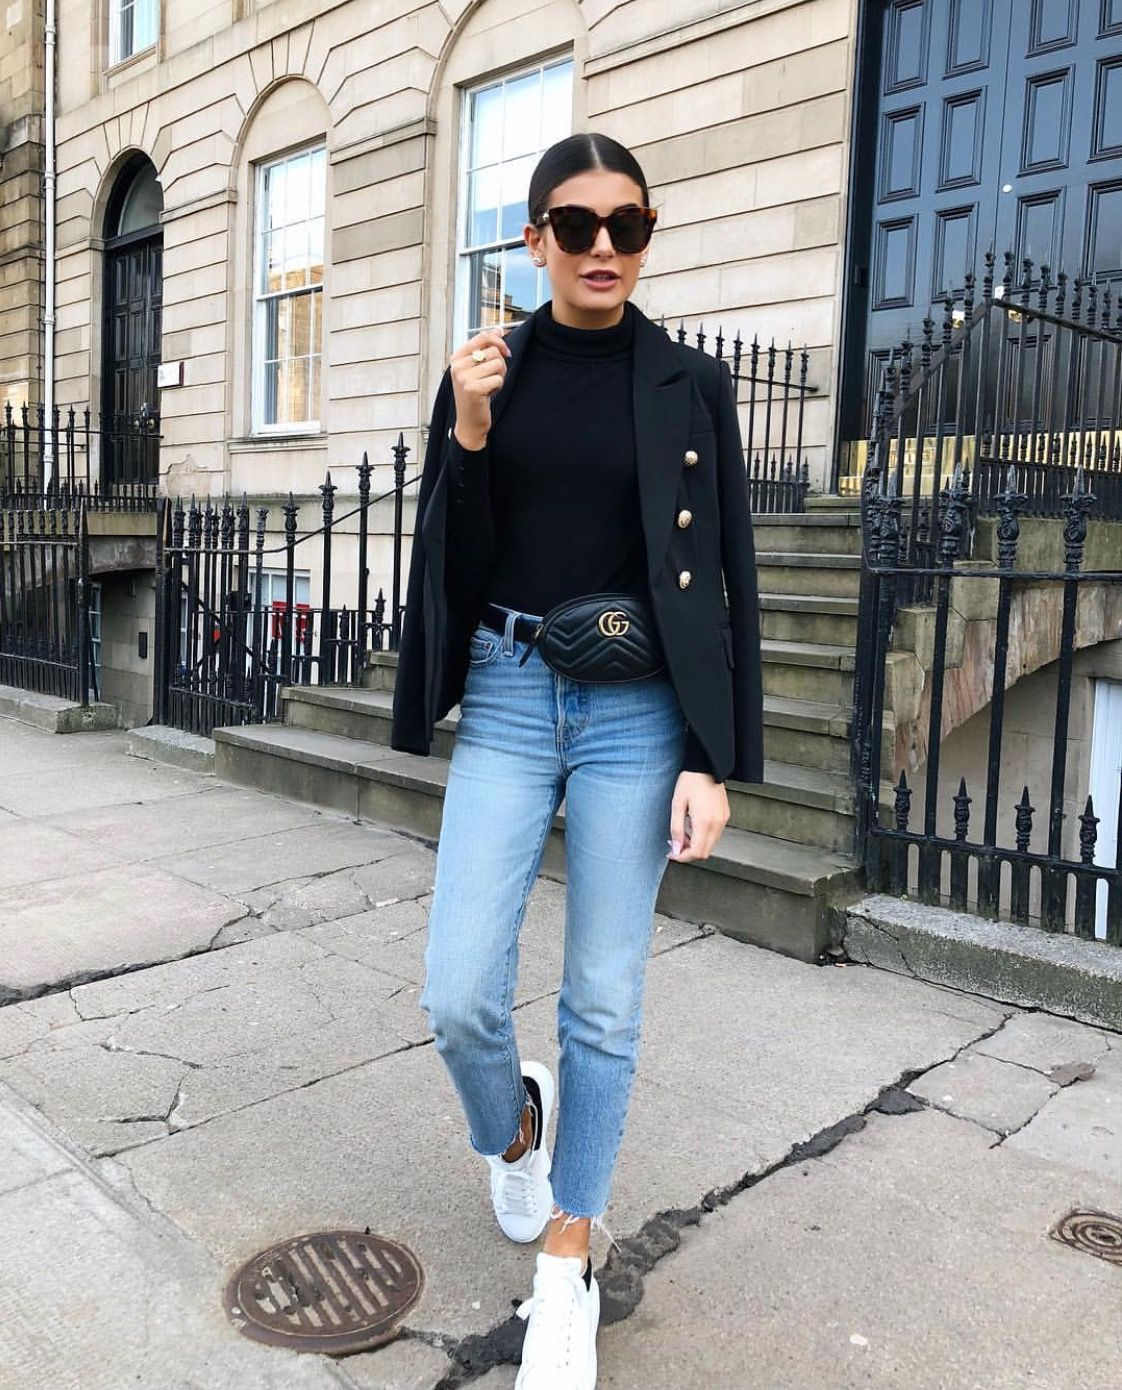 Street style , Levi wedgie mom jeans, Alexander McQueen trainers, Balmain blazer, Gucci Bum bag, Gucci belt bag, Gucci tortoise shell sunglasses - @fashionbymnp #denimstreetstyle